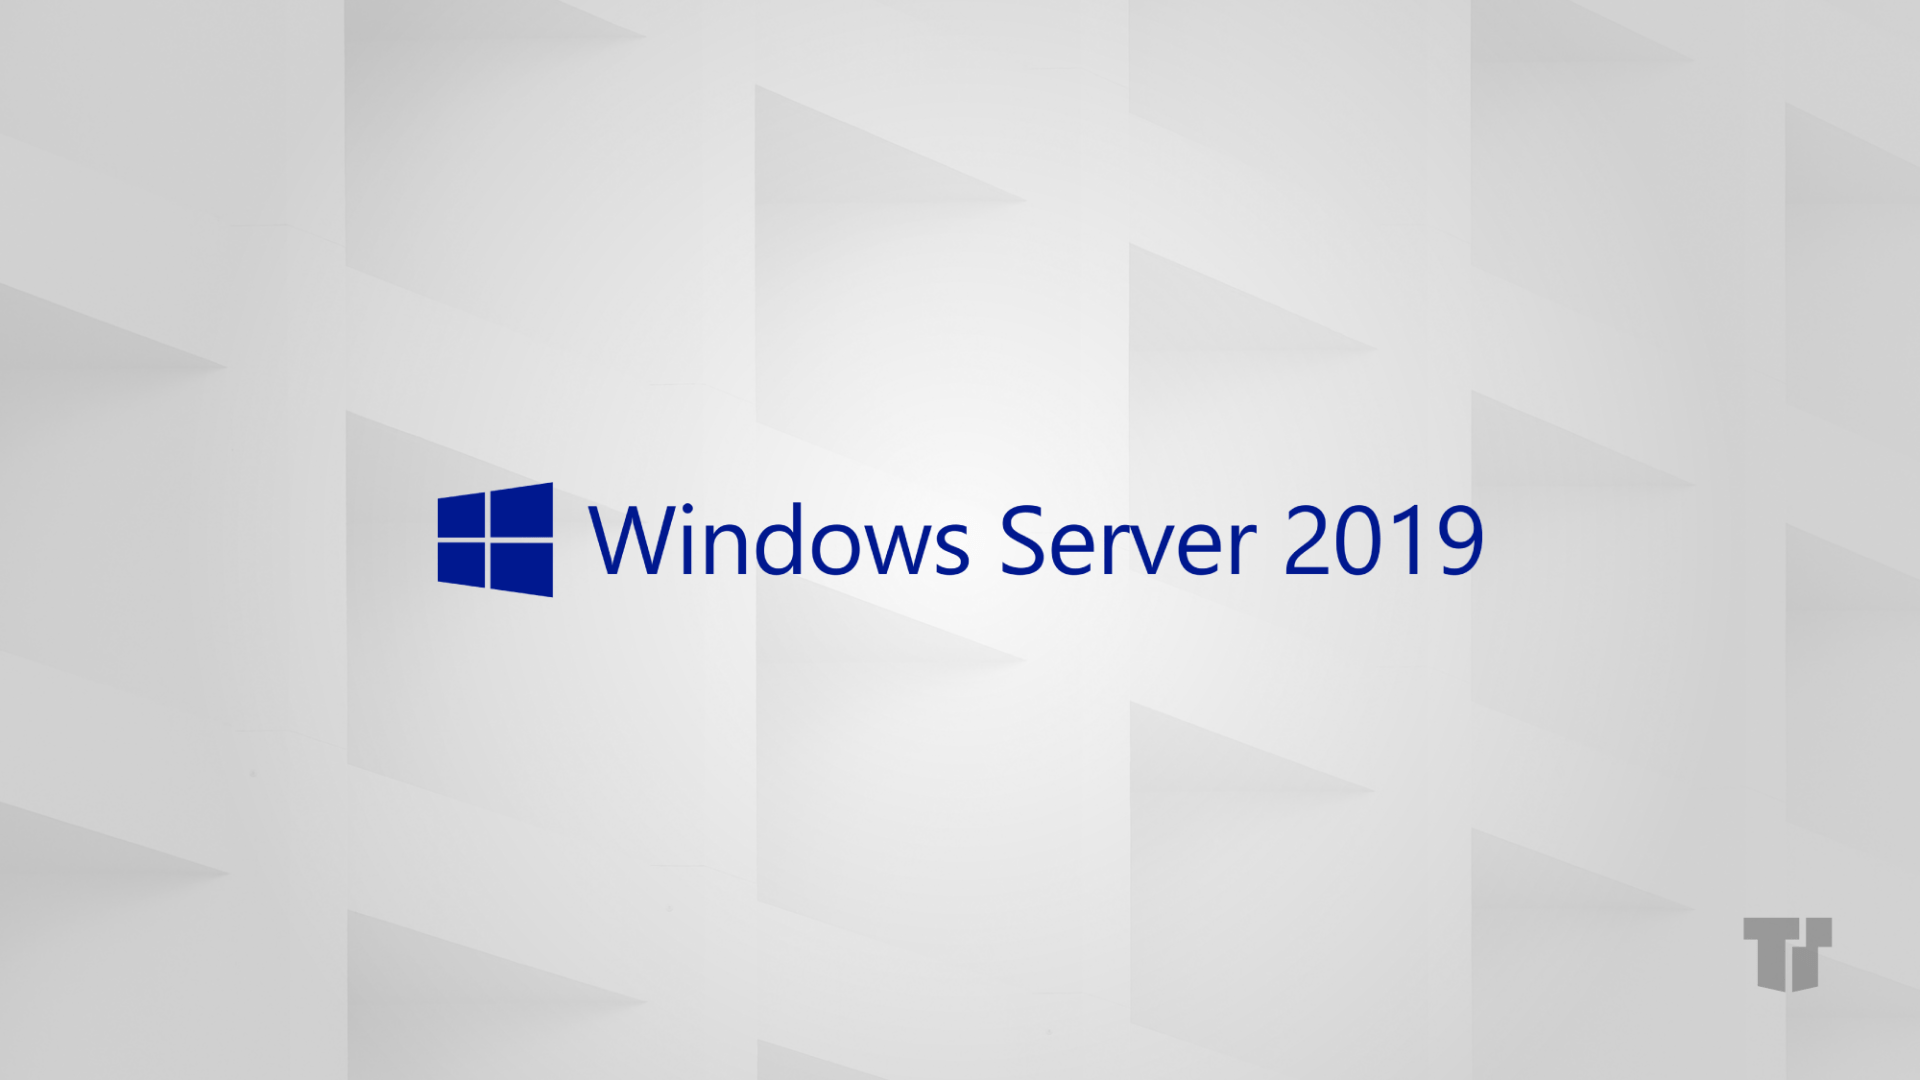 Windows Server 2019: Which Edition Is Best For Your Business? cover image